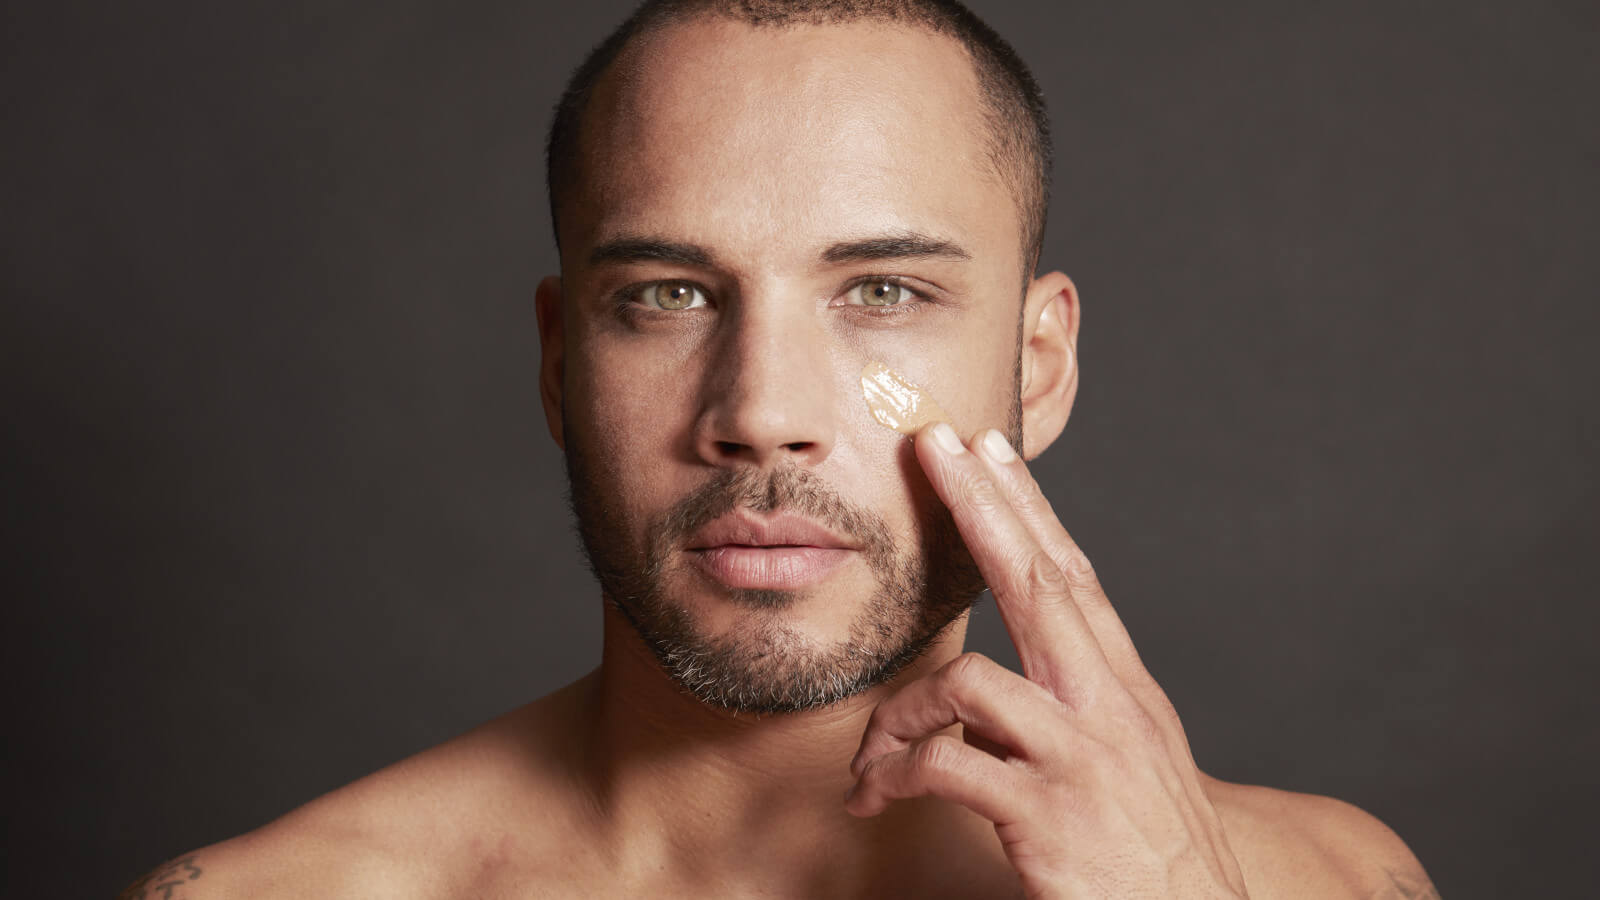 Skin Works Medical Spa is Number one provider of best acne treatment for men and women in Torrance and south bay los angeles